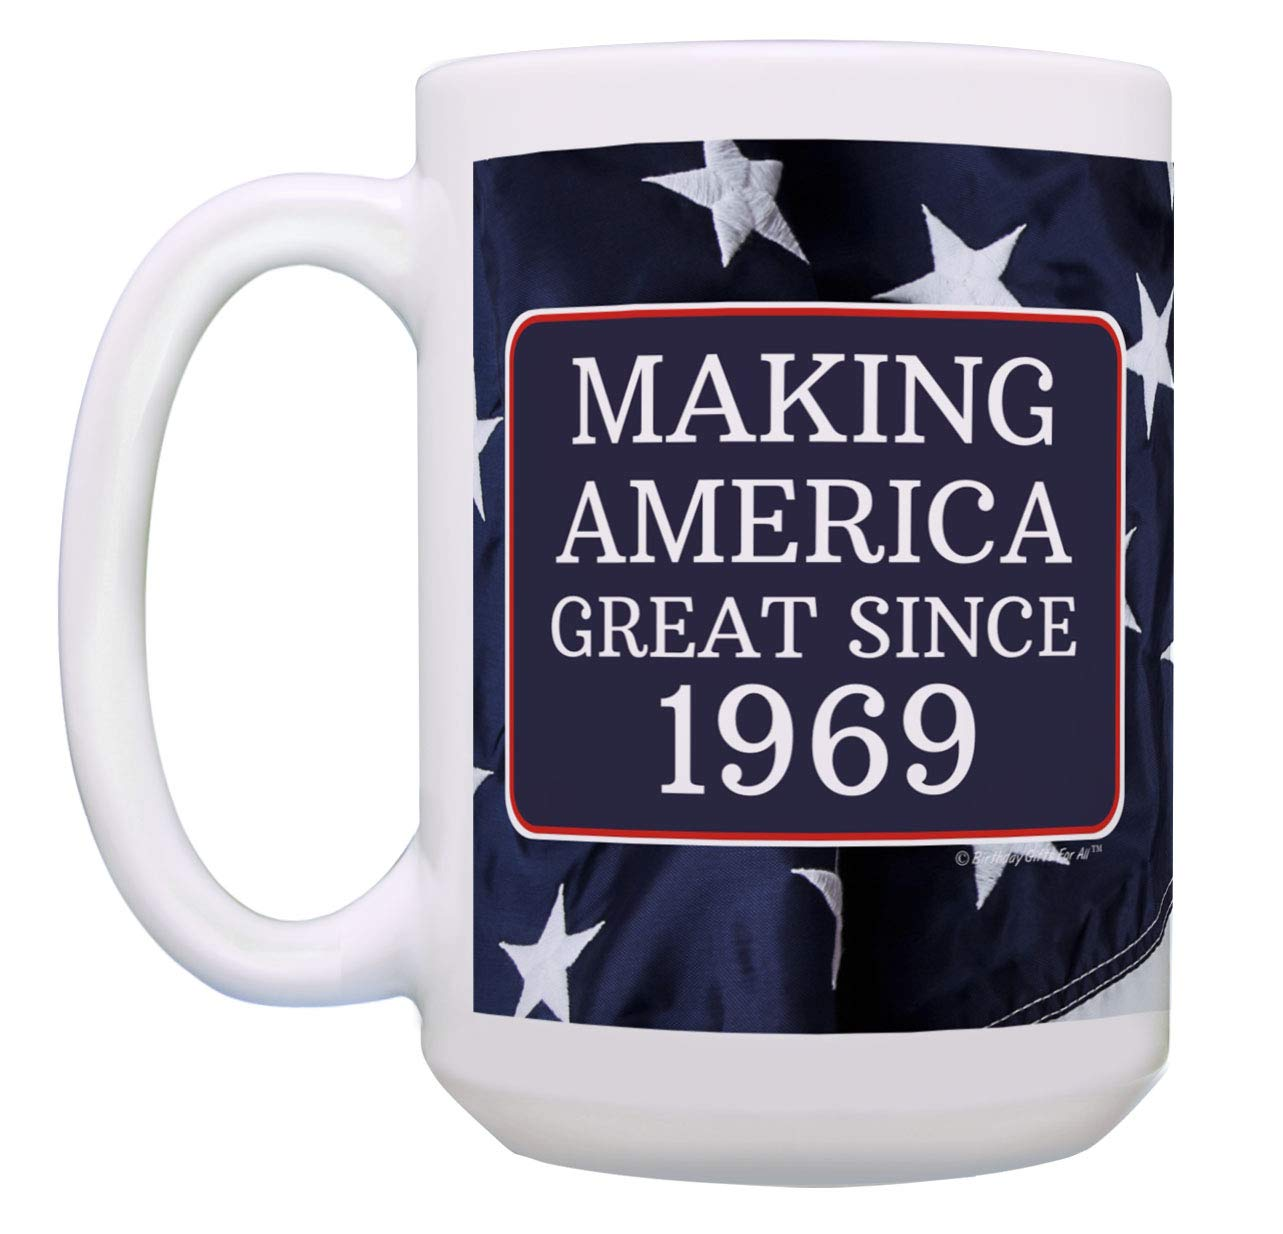 50th Birthday Gifts For All Making America Great Since 1969 Turning 50 Gift Ideas MAGA Coffee Mug 15 Oz Tea Cup